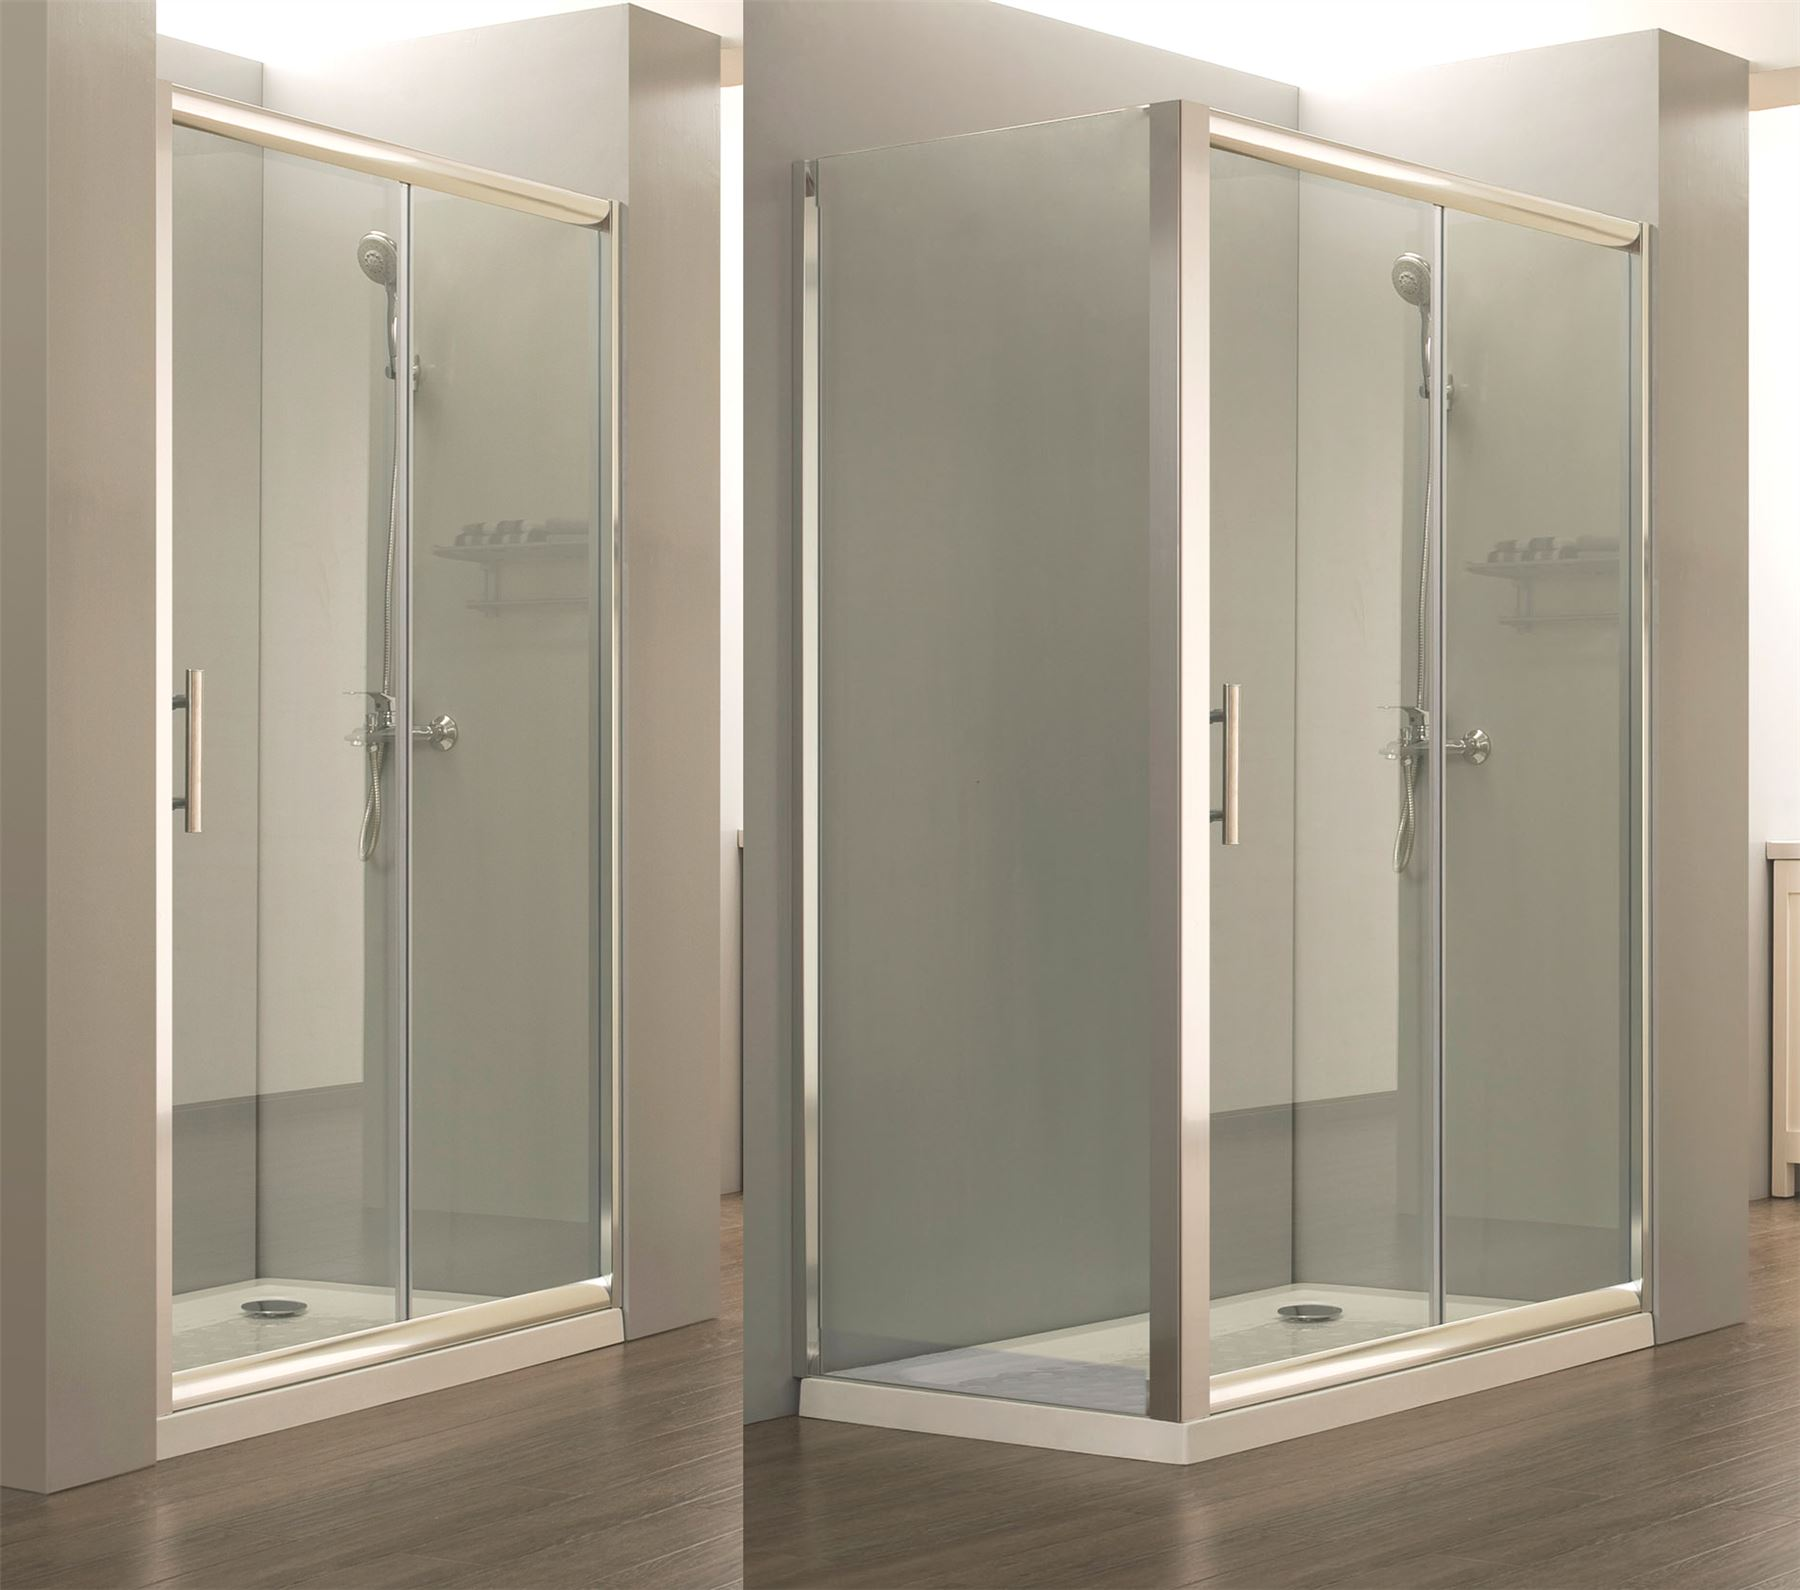 Easy walk in glass quadrant corner sliding door shower for Walk in shower tray